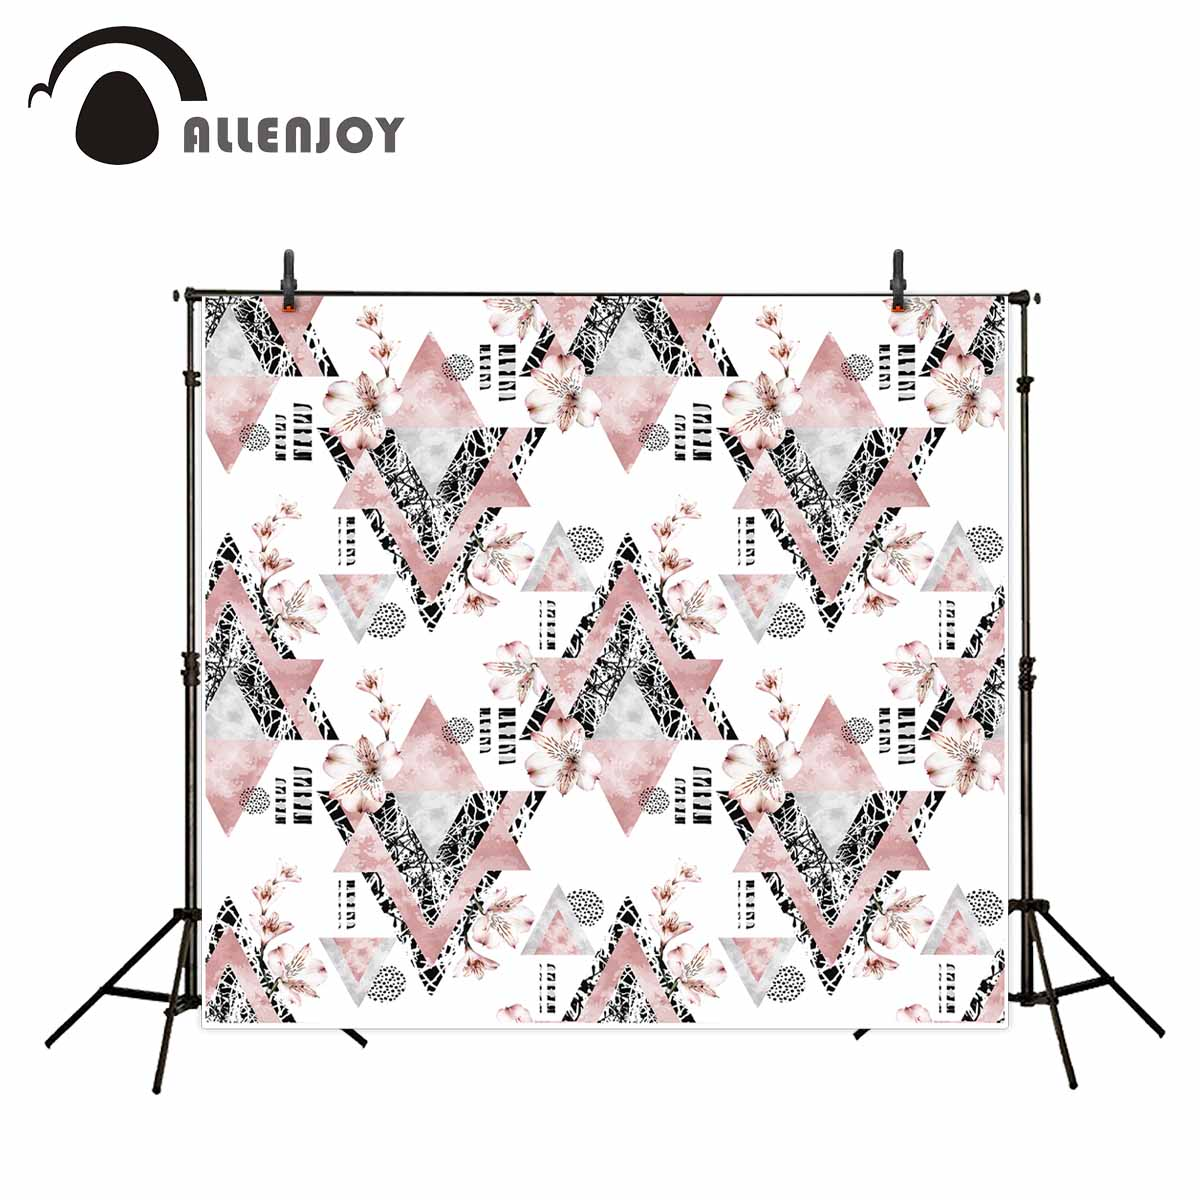 Allenjoy photography backdrops Abstract fashion stylish background Pink vintage flowers triangles backgrounds for photo studio